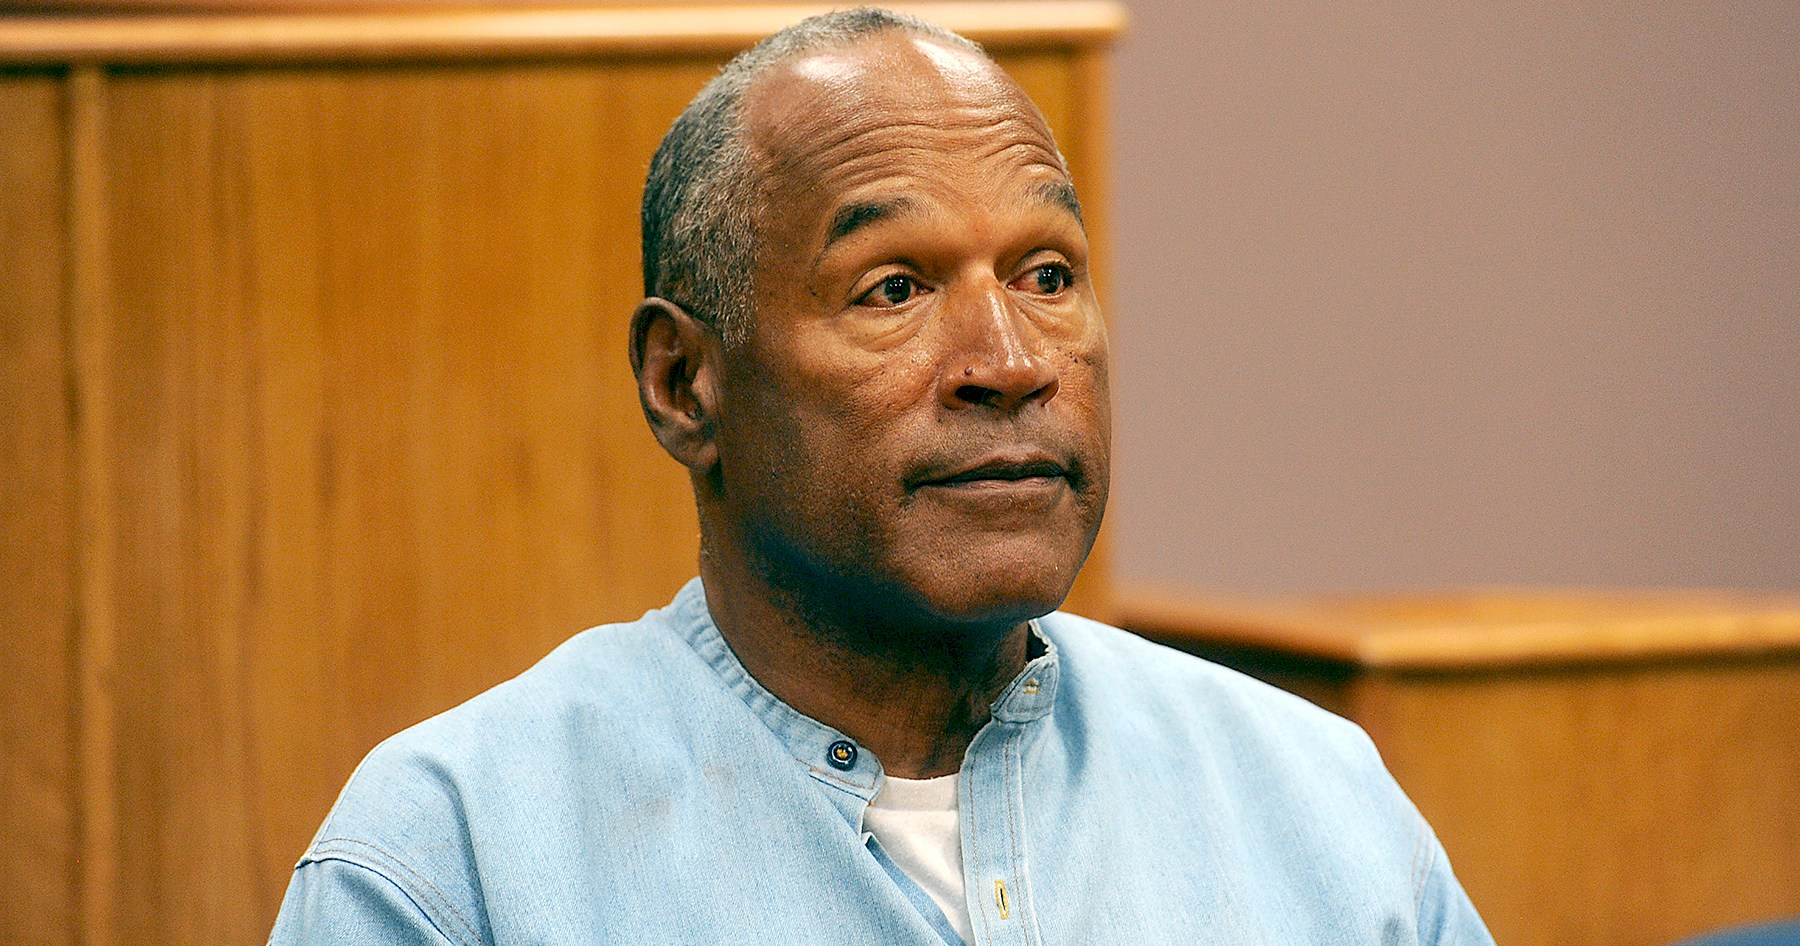 O.J. Simpson Banned From Cosmopolitan Hotel in Las Vegas After Alleged Drunken Incident